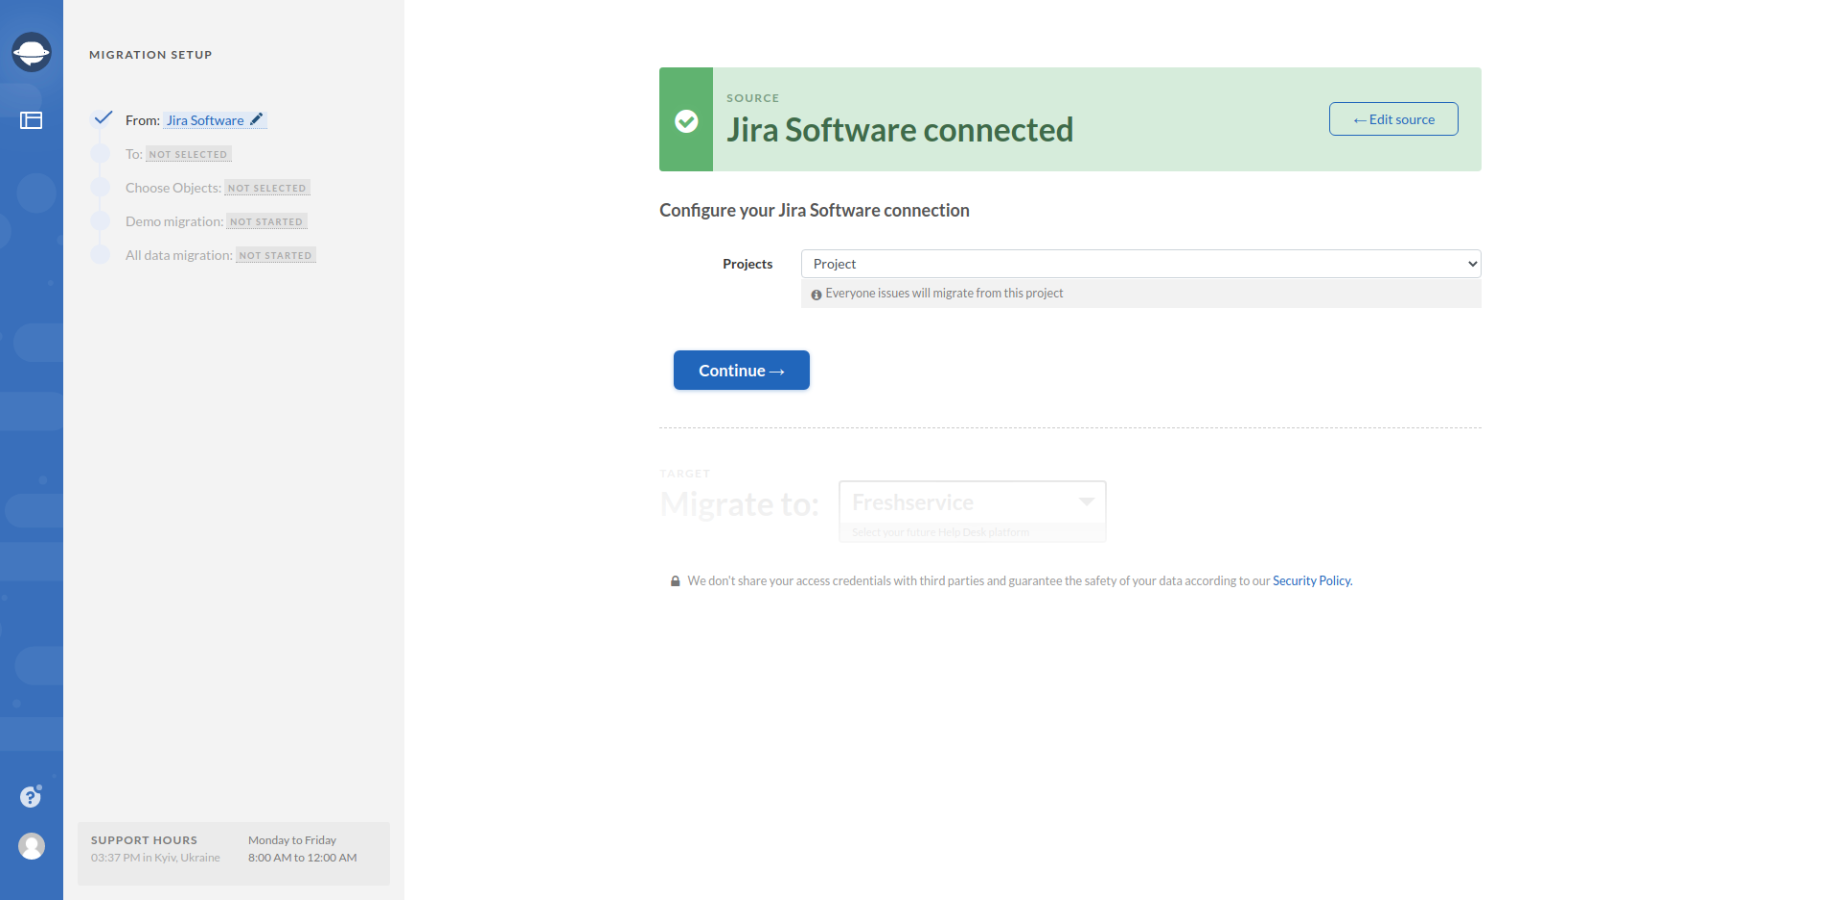 Configure Jira Software Connection